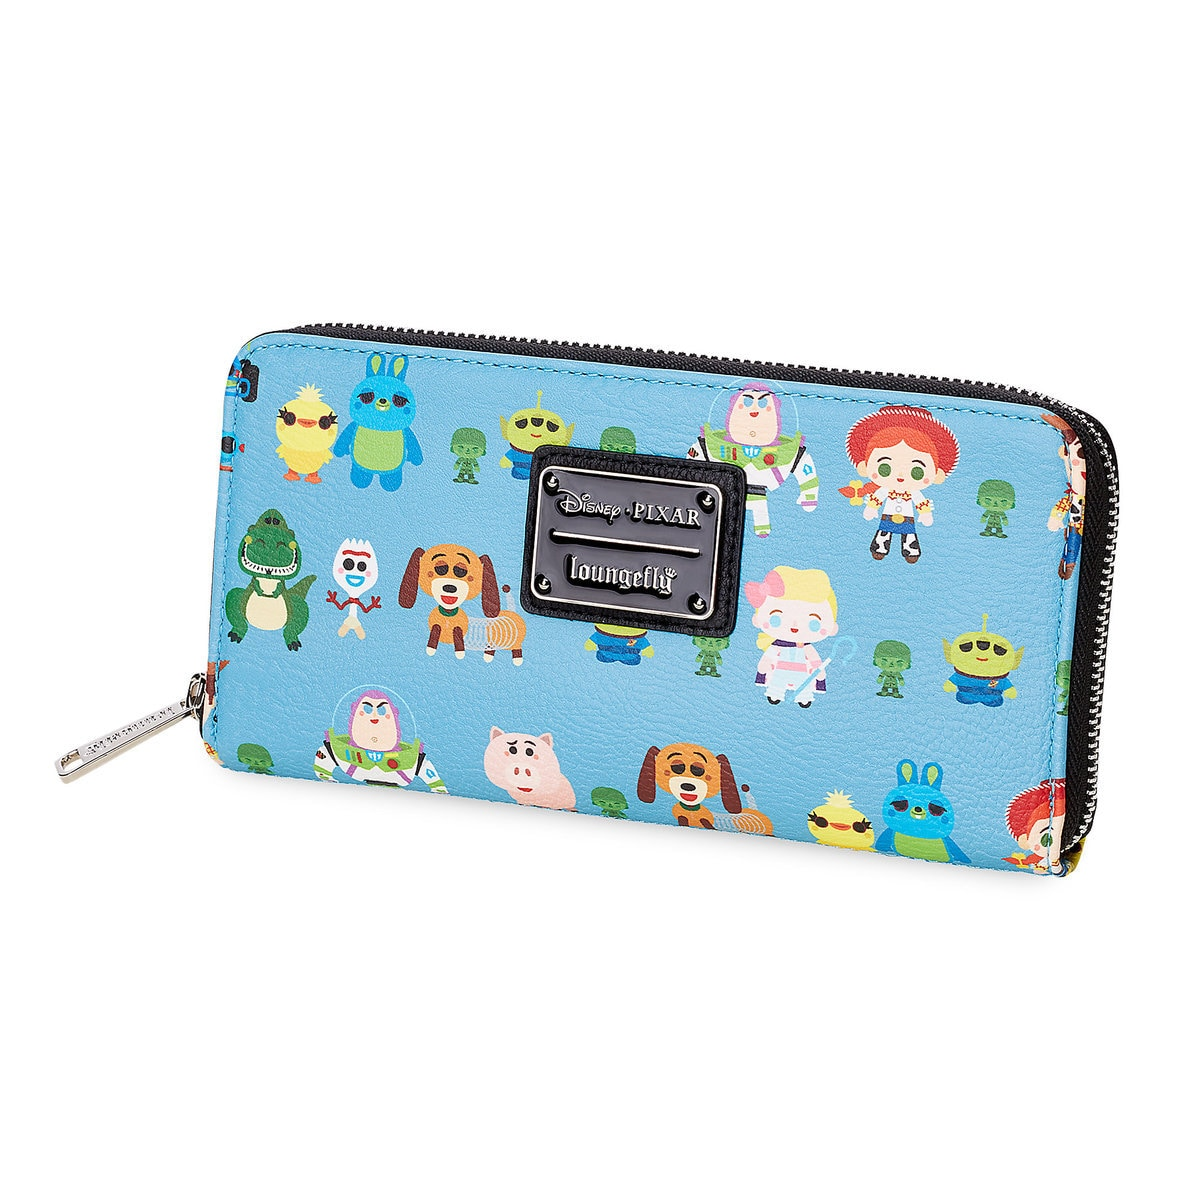 89af1117af Product Image of Toy Story 4 Zip-Around Wallet by Loungefly # 1